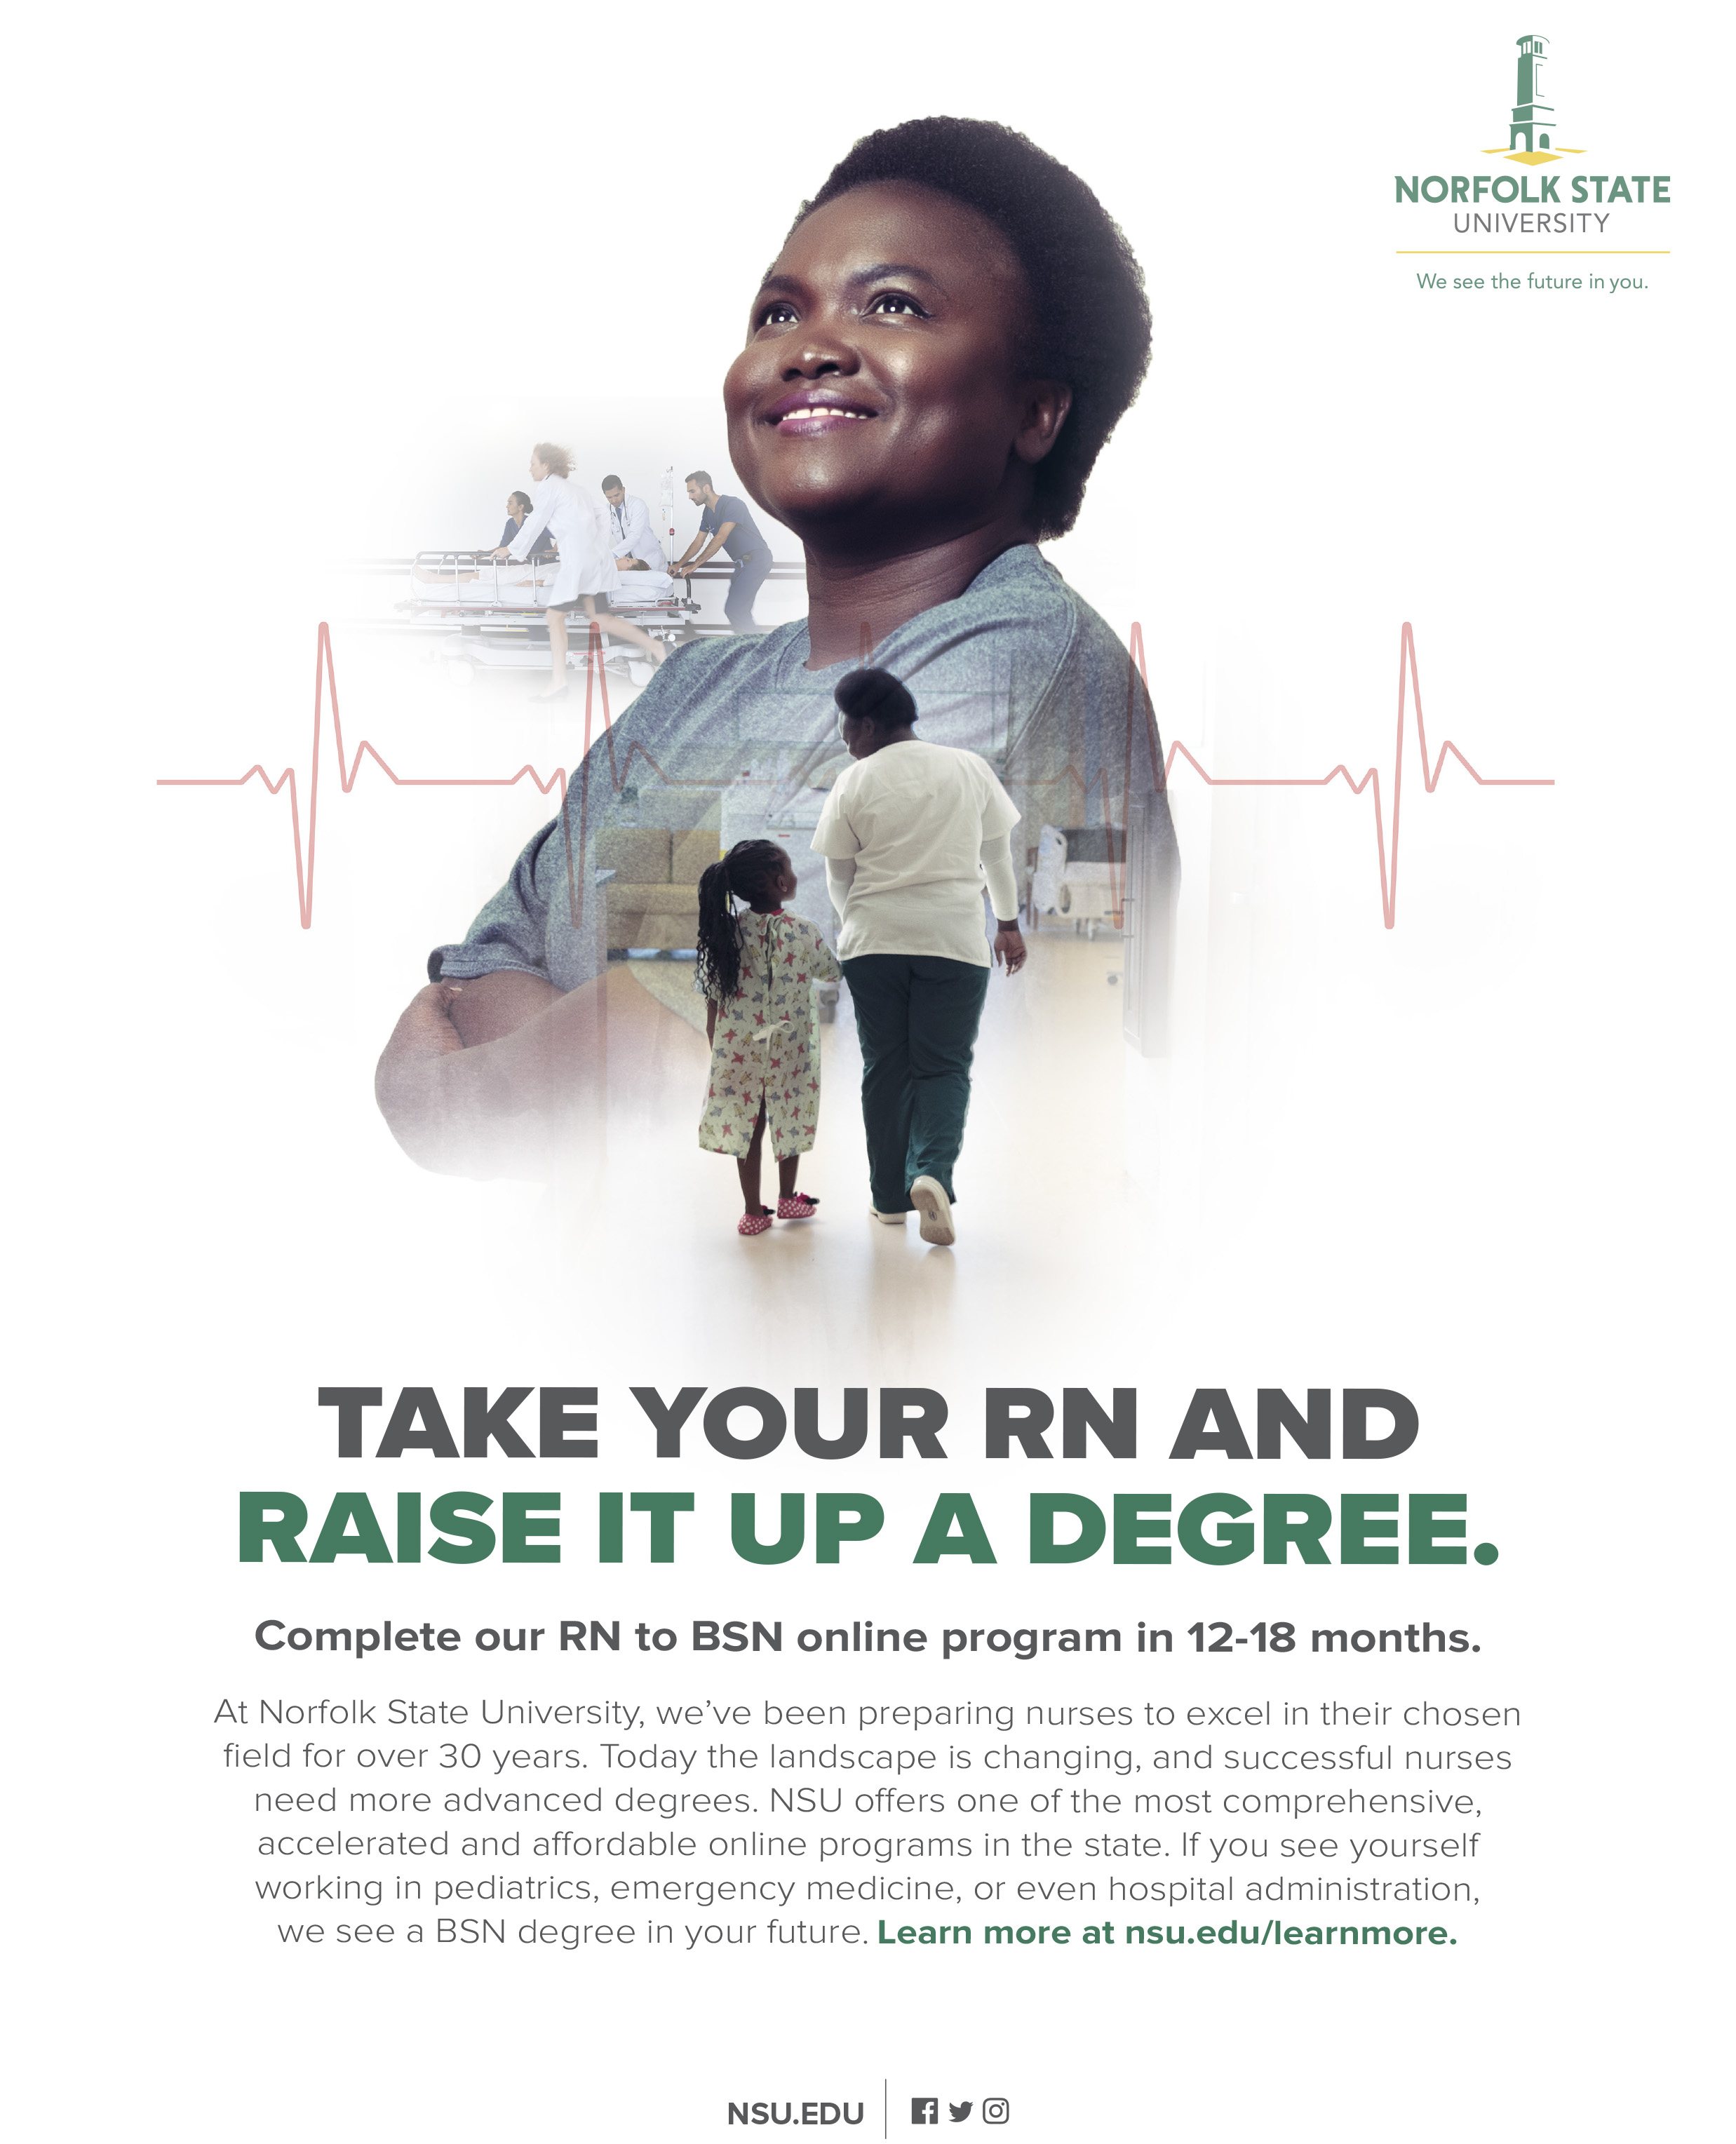 Take your RN and raise it up a degree. Complete our RN to BSN online program in 12-18 months.At Norfolk State University, we've been preparing nurses to excel in their chosen field for over 30 years. Today the landscape is changing, and successful nurses need more advanced degrees. NSU offers one of the most comprehensive, accelerated and affordable online programs in the state. If you see yourself working in pediatrics, emergency medicine, or even hospital administration, we see a BSN degree in your future. Learn more at nsu.edu/learnmore